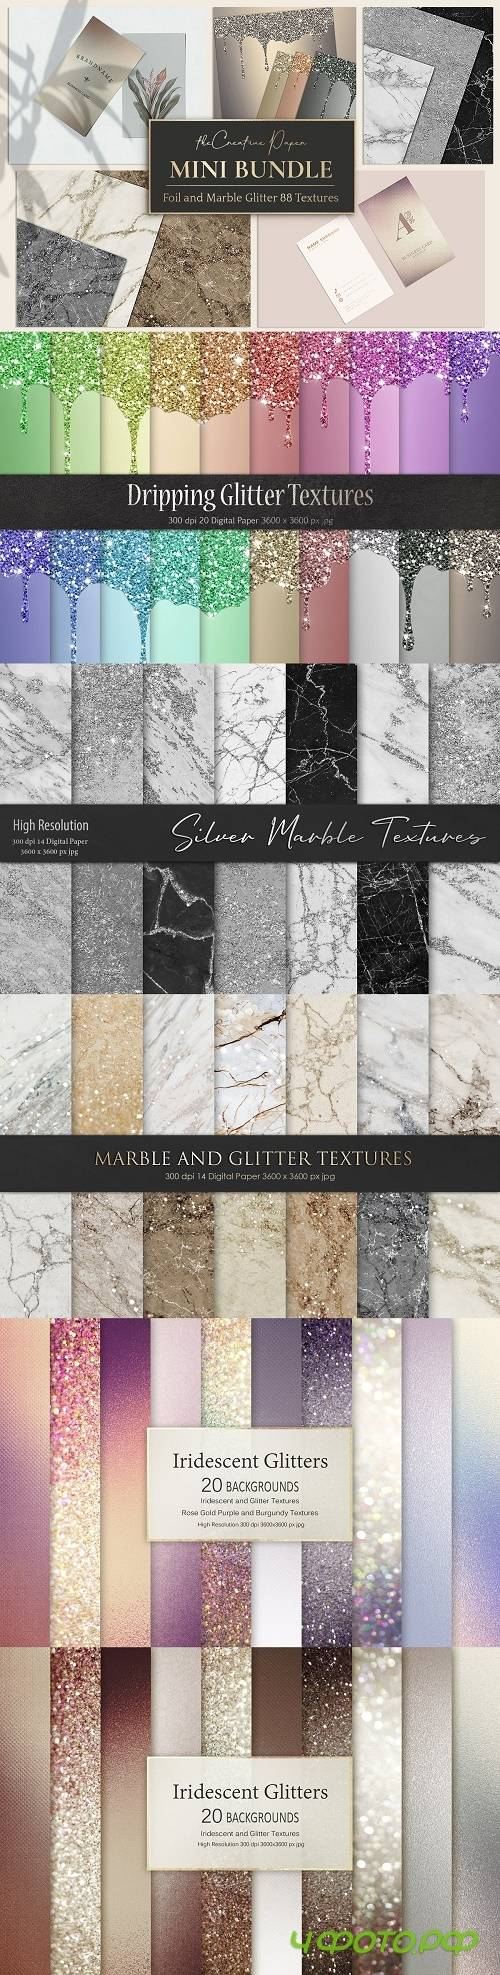 Rose Gold Foil & Marble Textures - 4328747